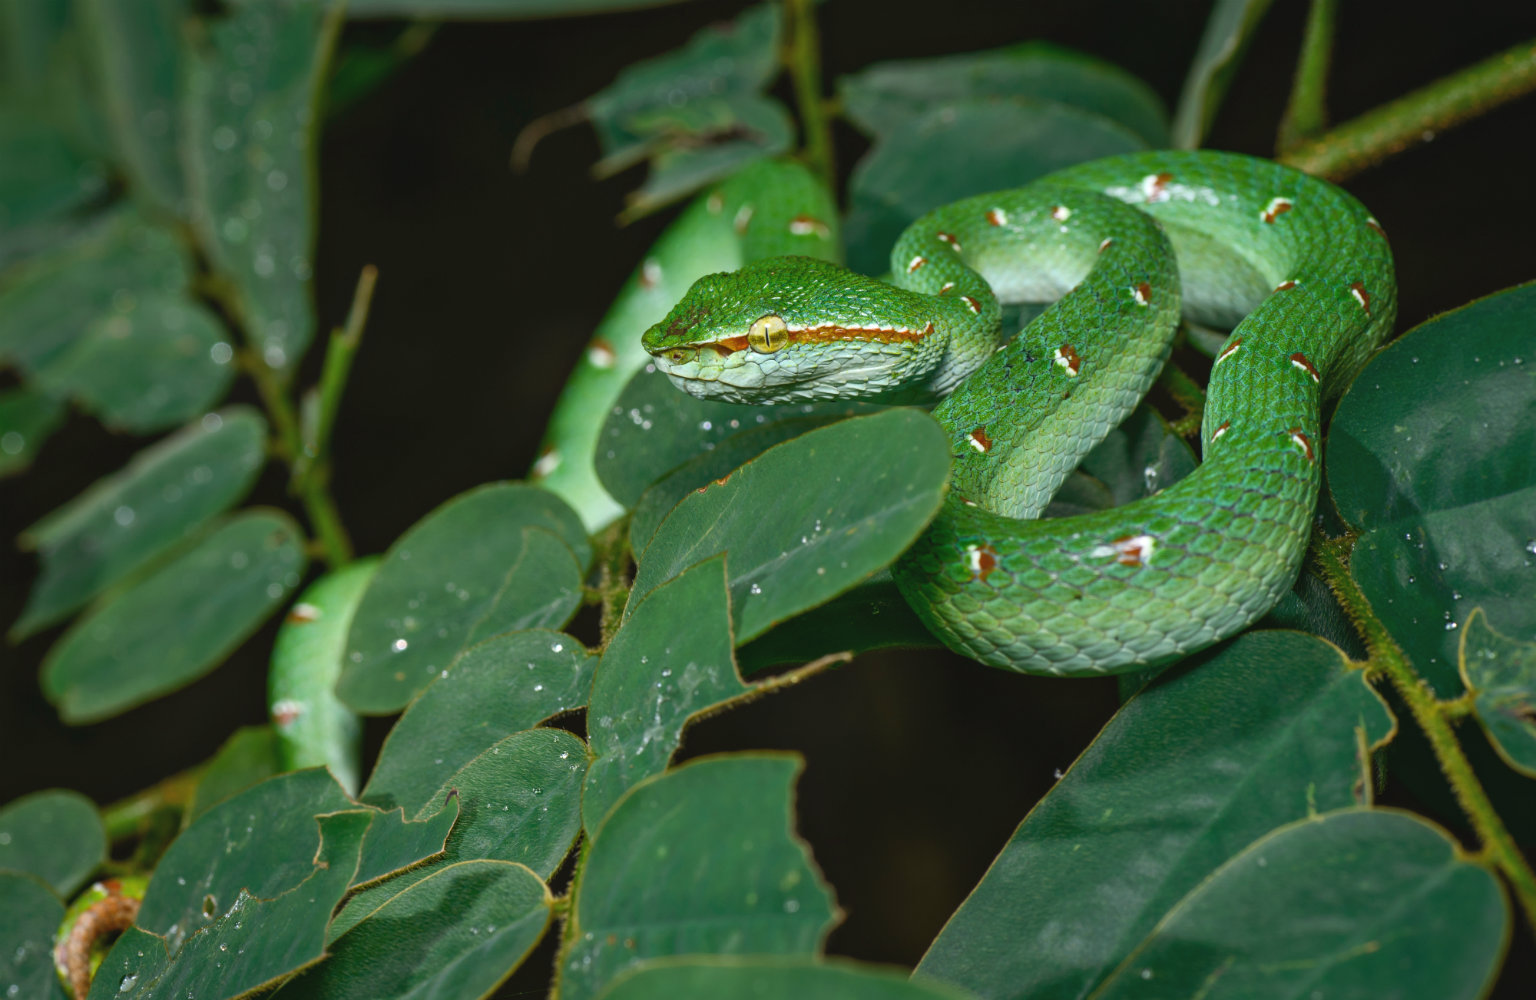 Snake in tree during night safari in Khao Sok National Park